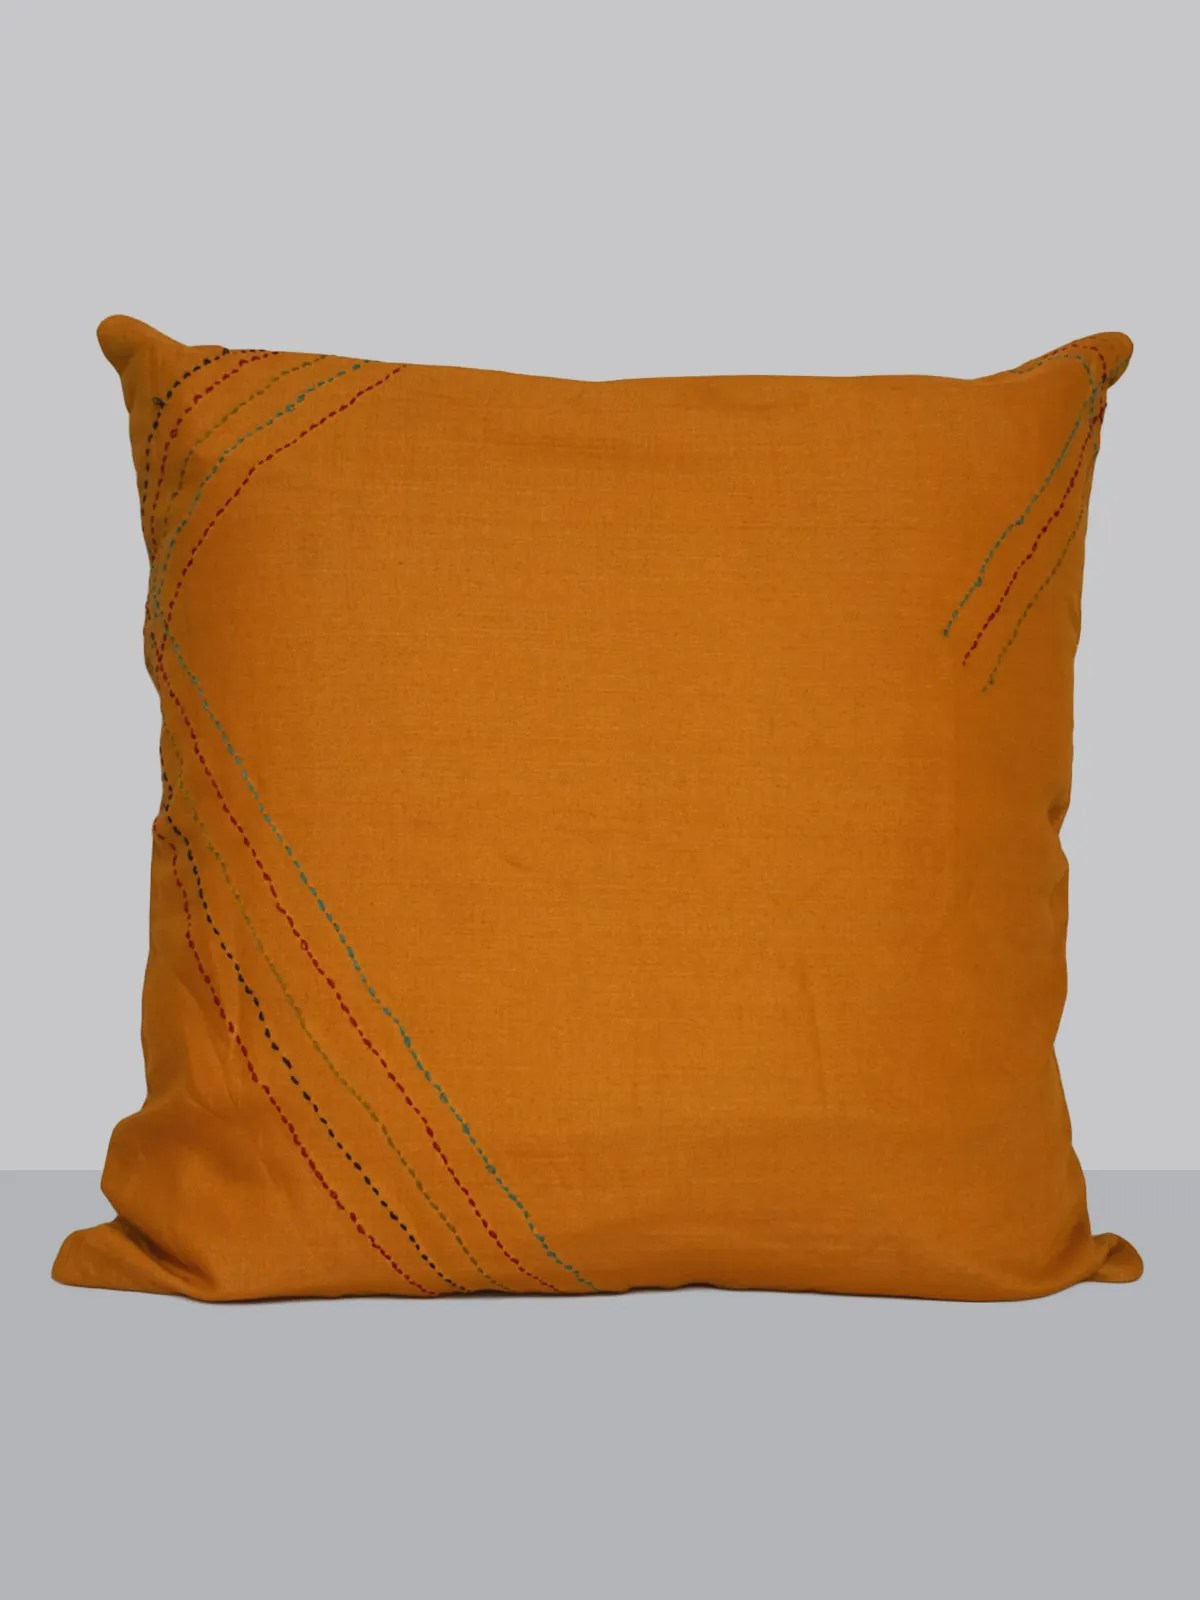 Buy Cushions Buy Indian Cushion Covers Online Exclusive At Indian August